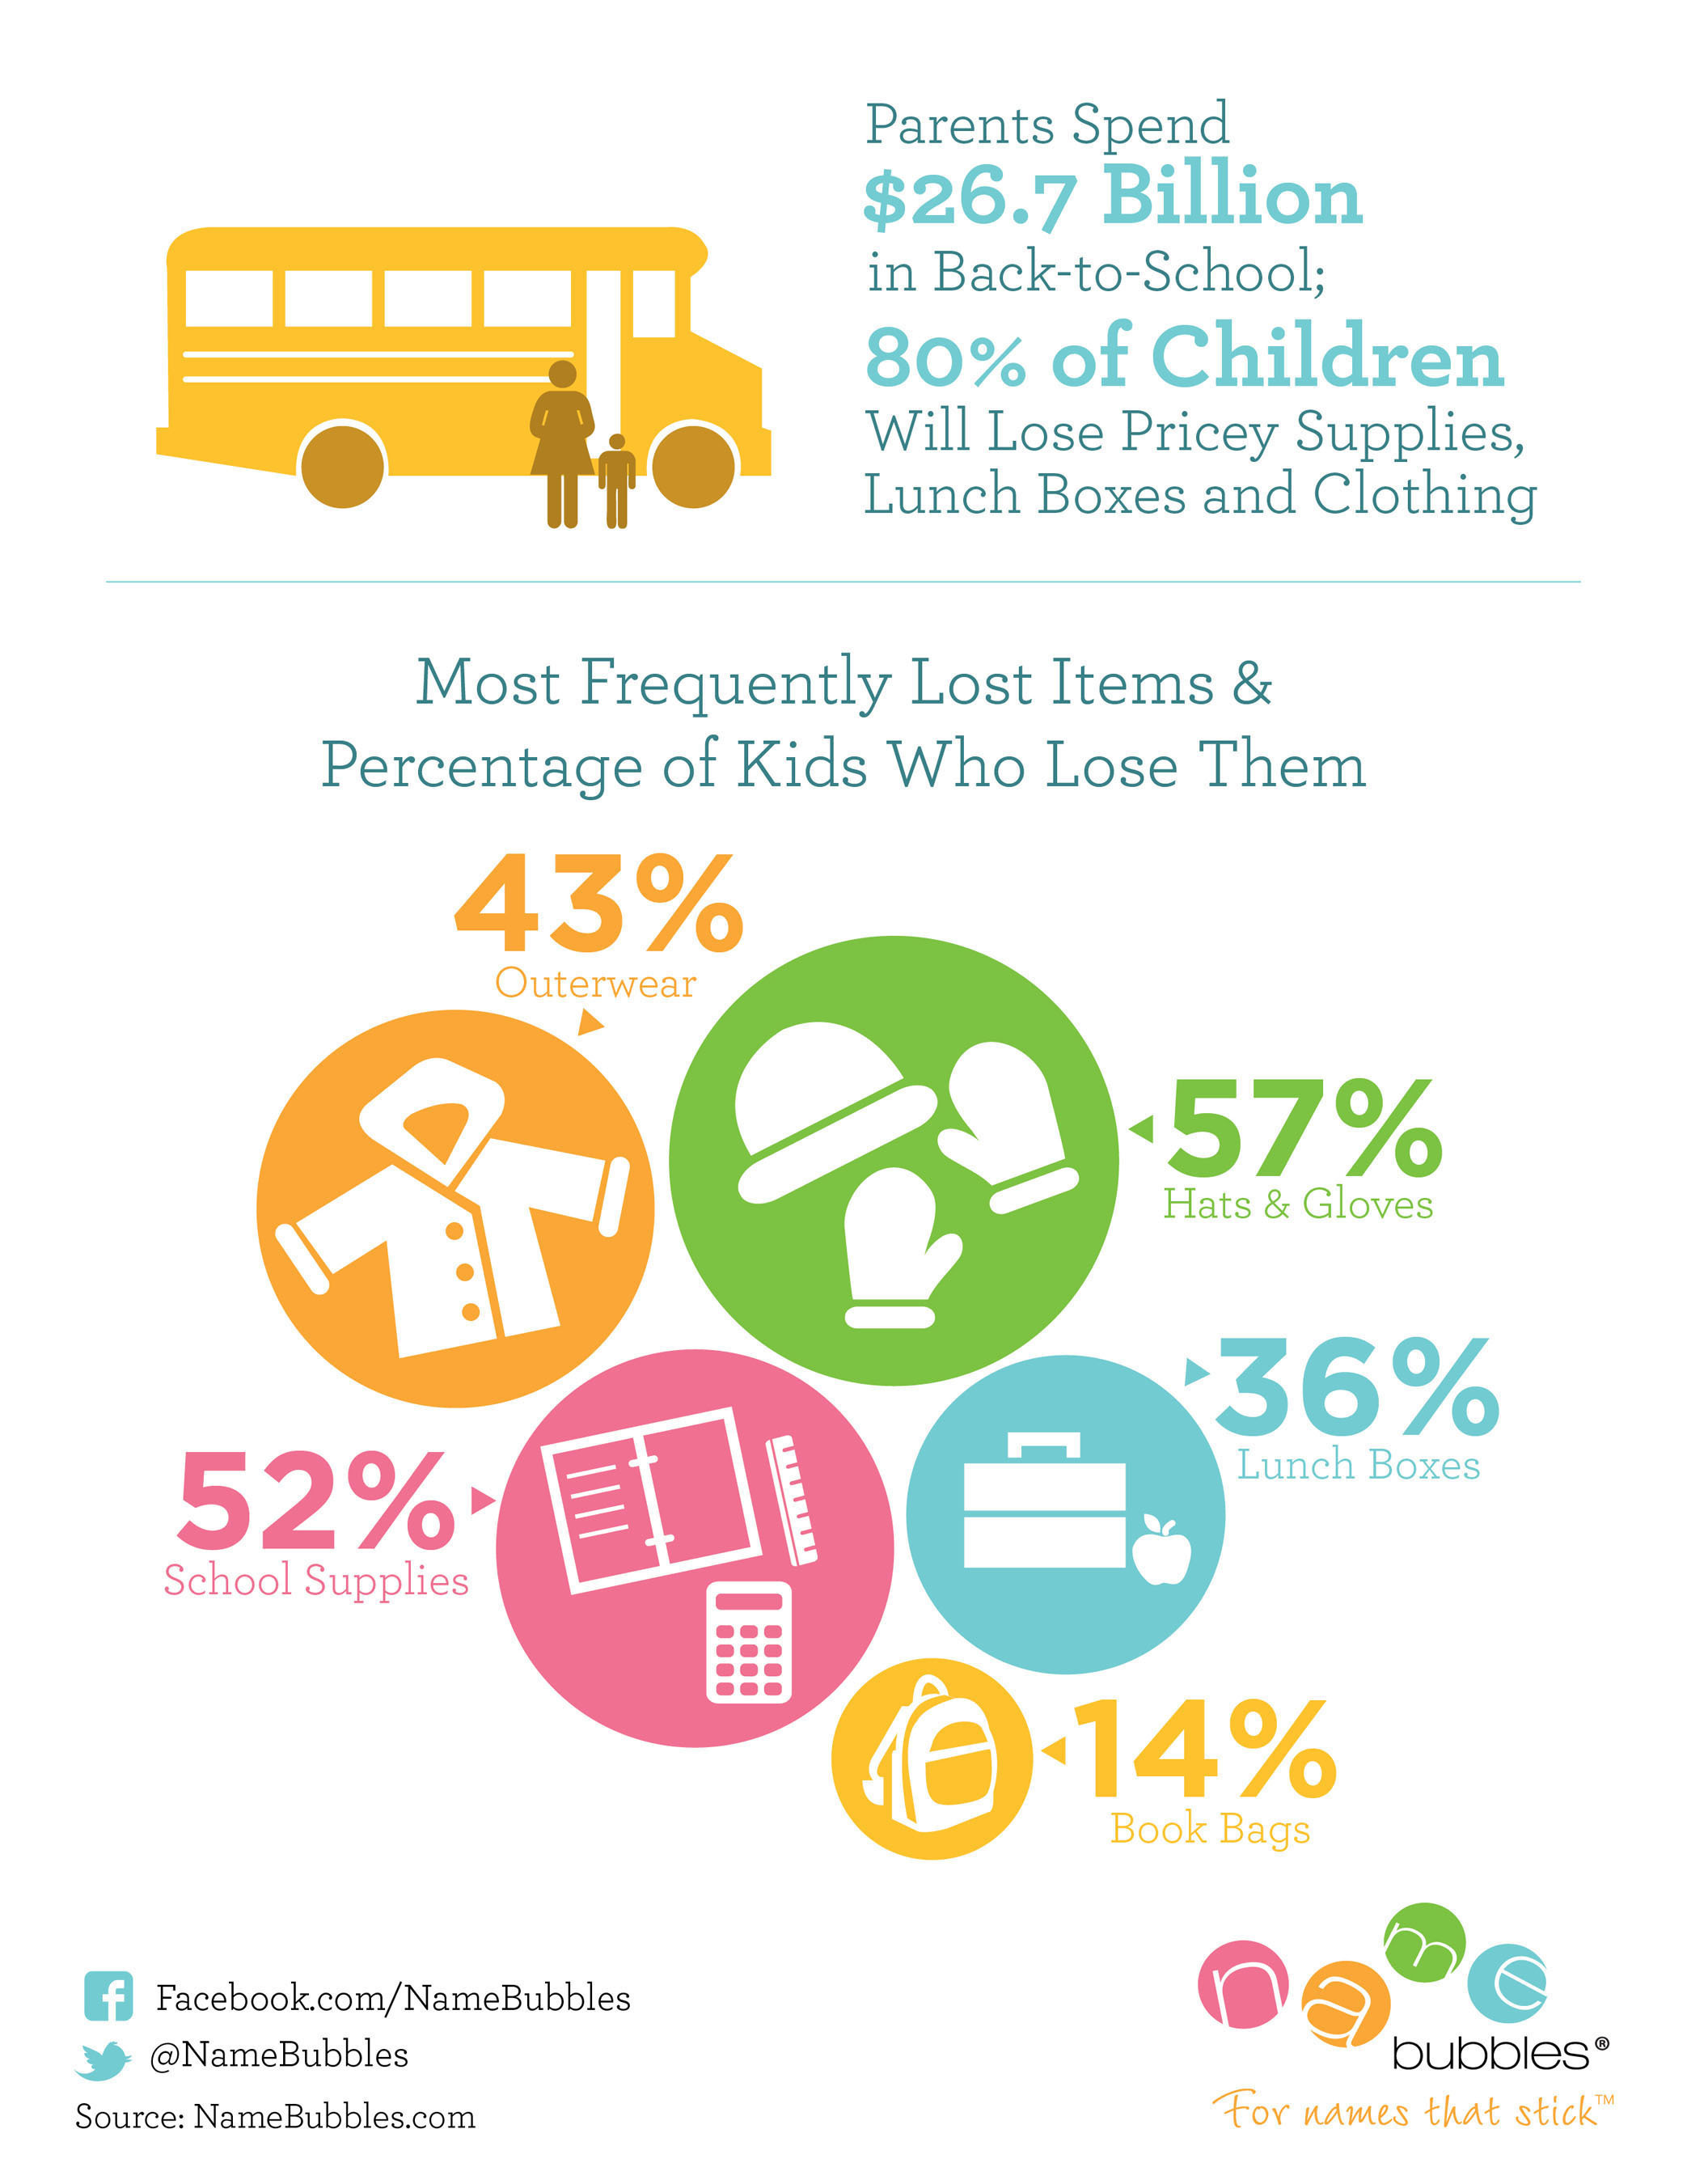 *Parents Spend $26.7 Billion in Back-to-School; 80% of Children Will Lose Pricey Supplies, Lunch